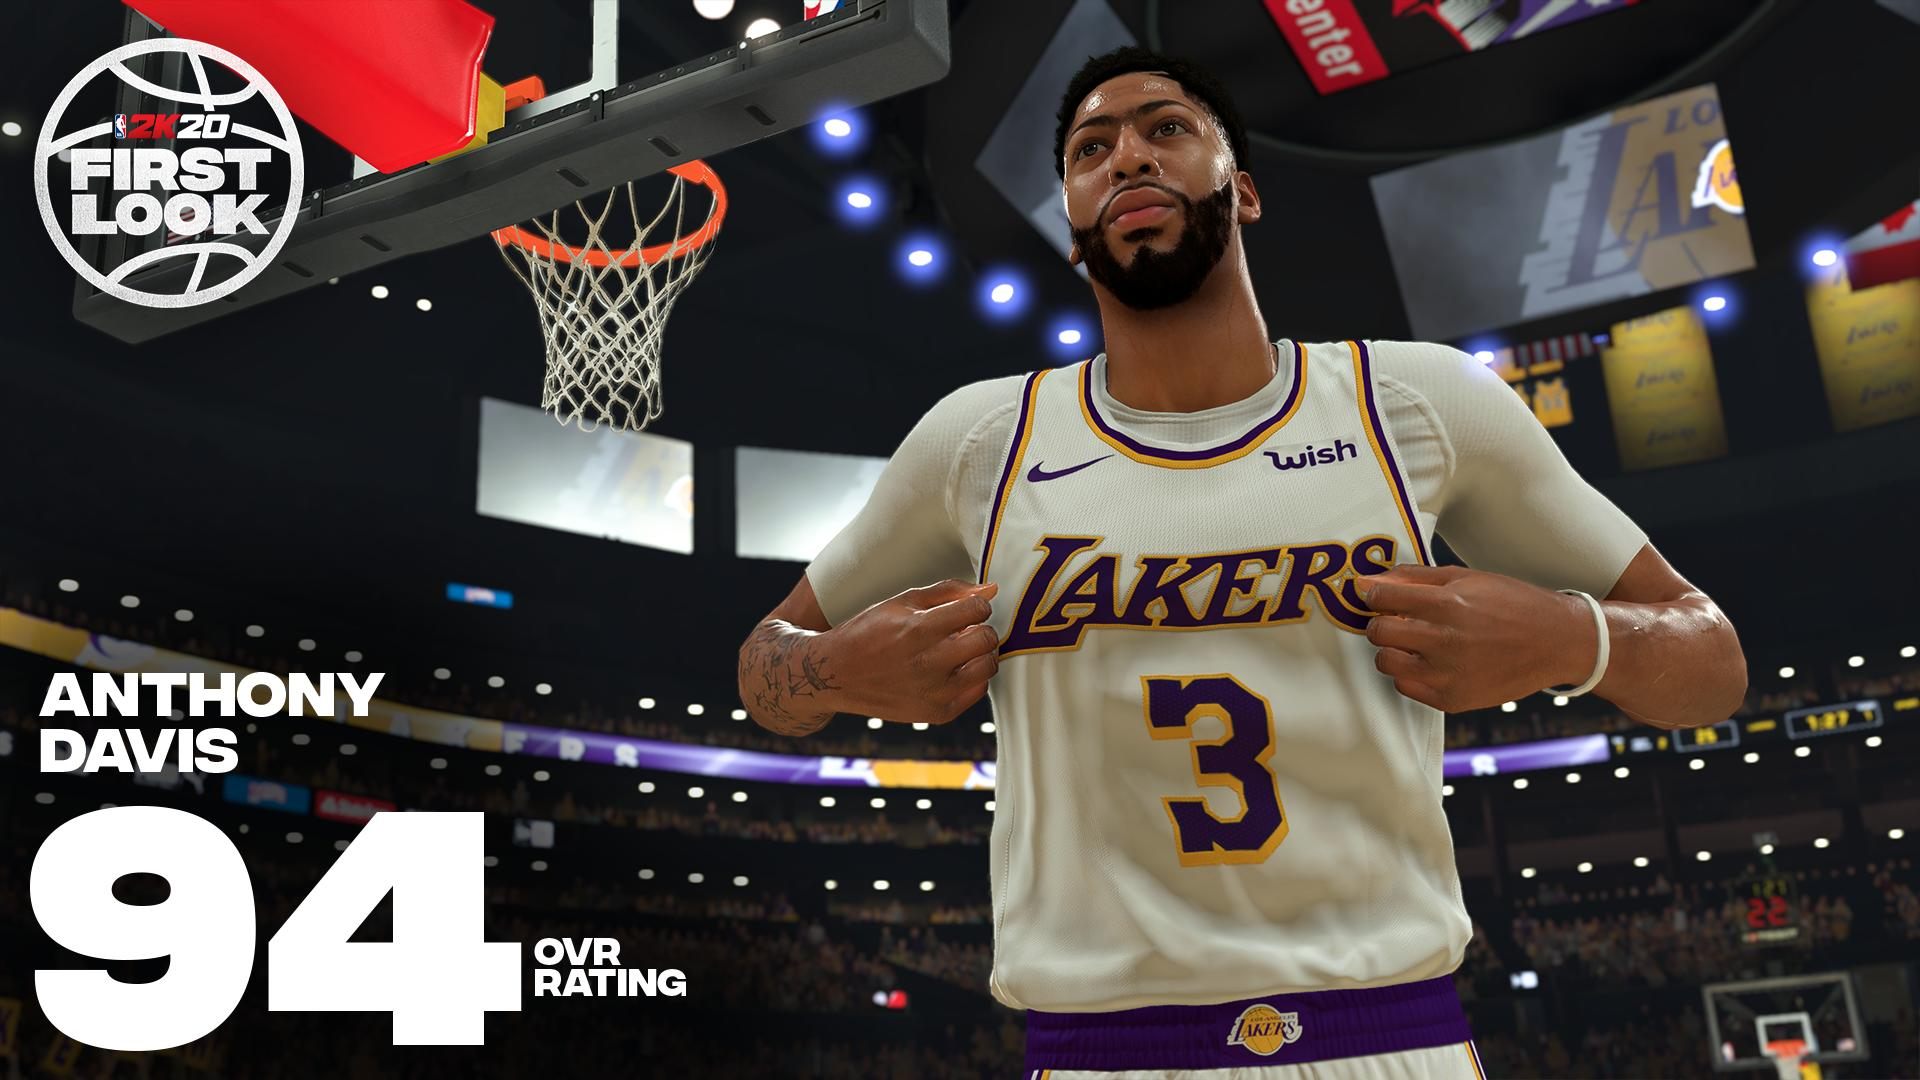 Nba 2k20 Cover Star Anthony Davis Shows Off Lakers Jersey